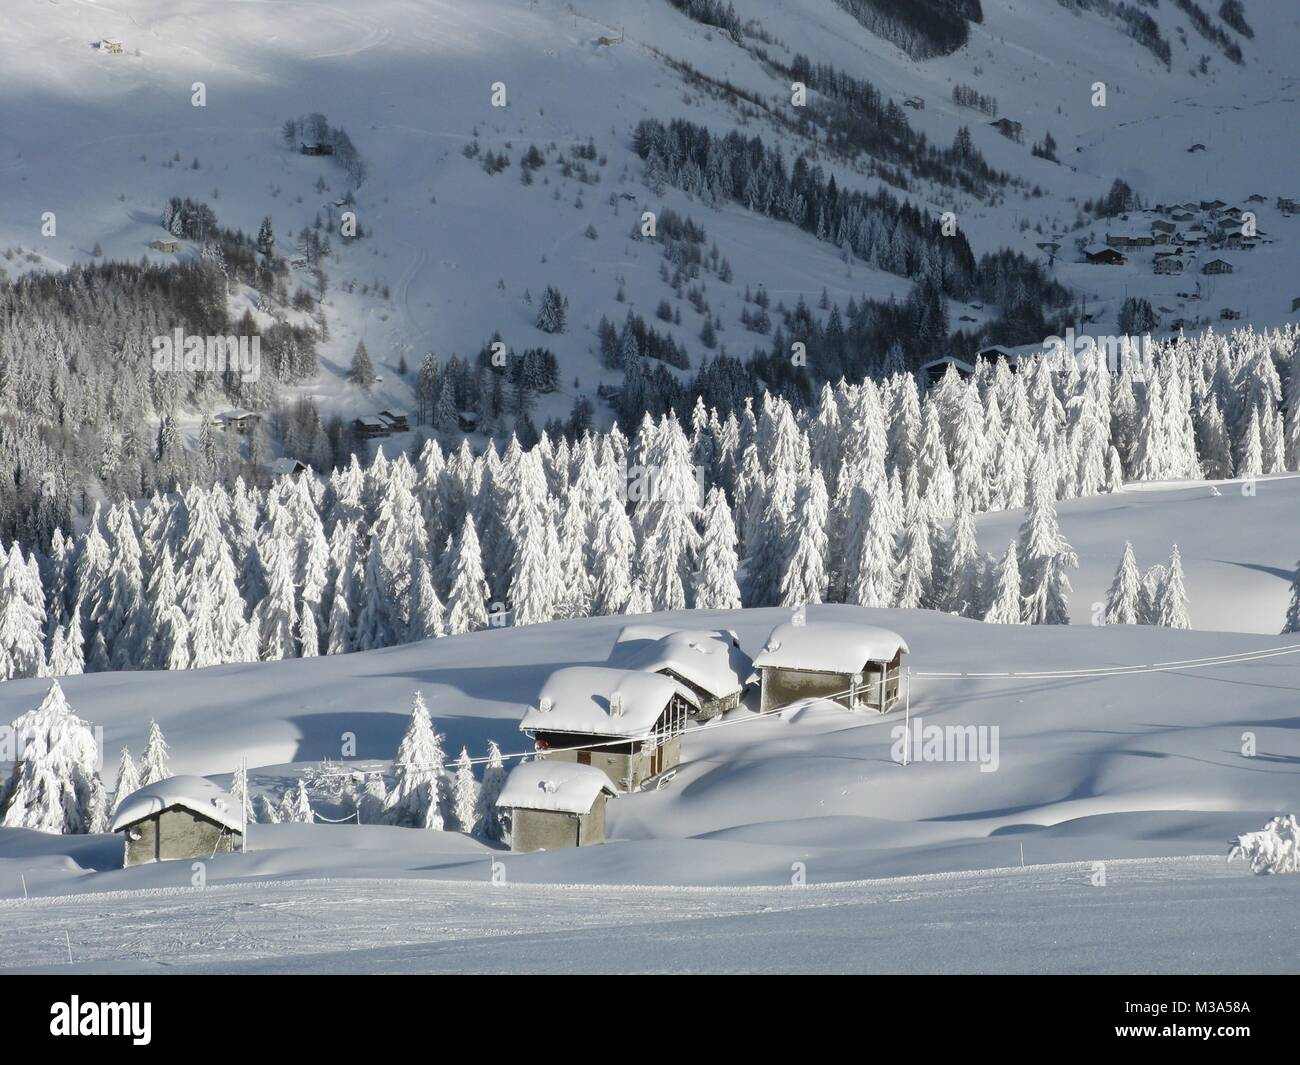 enchanted landscape after heavy snowfall - Stock Image